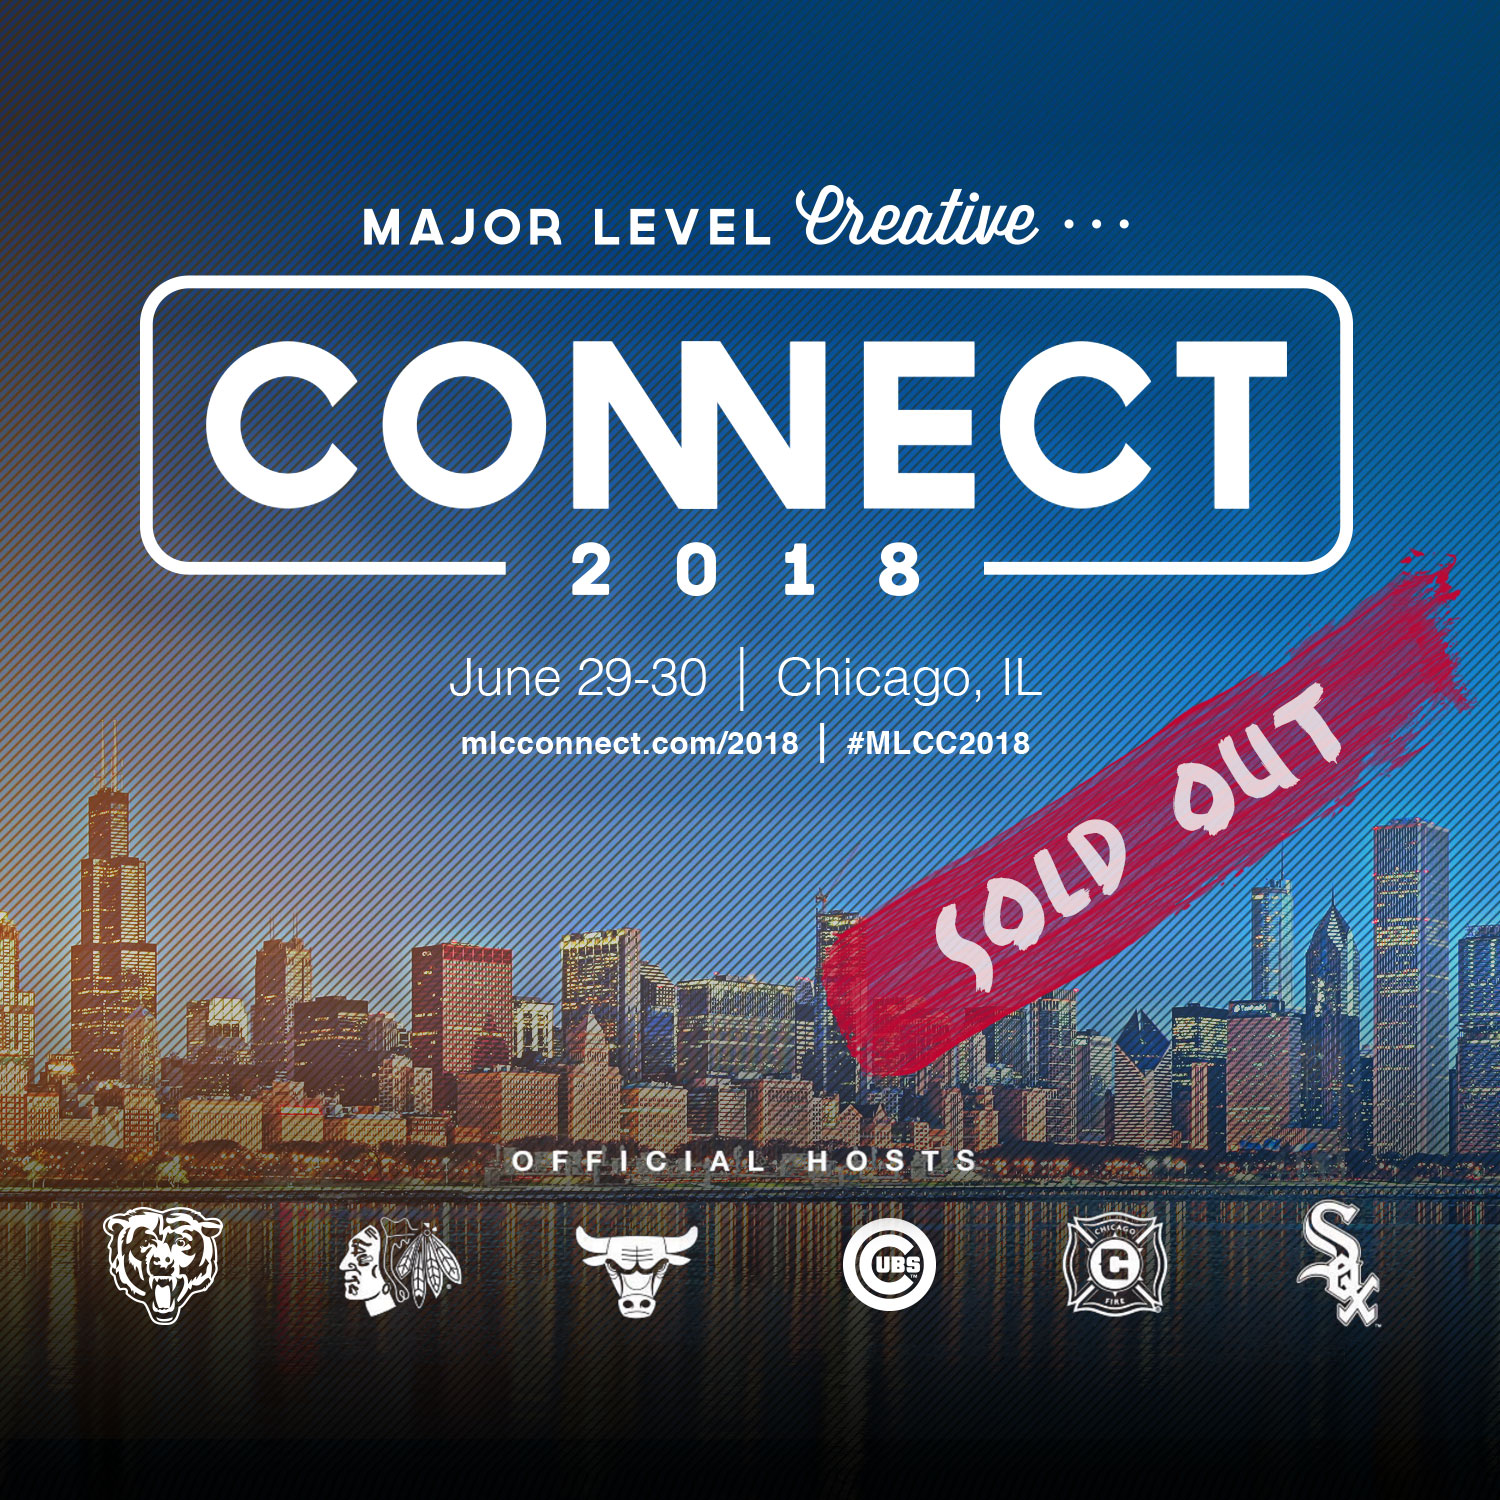 CONNECT2018-1500x1500-Graphic-Registration-5.jpg